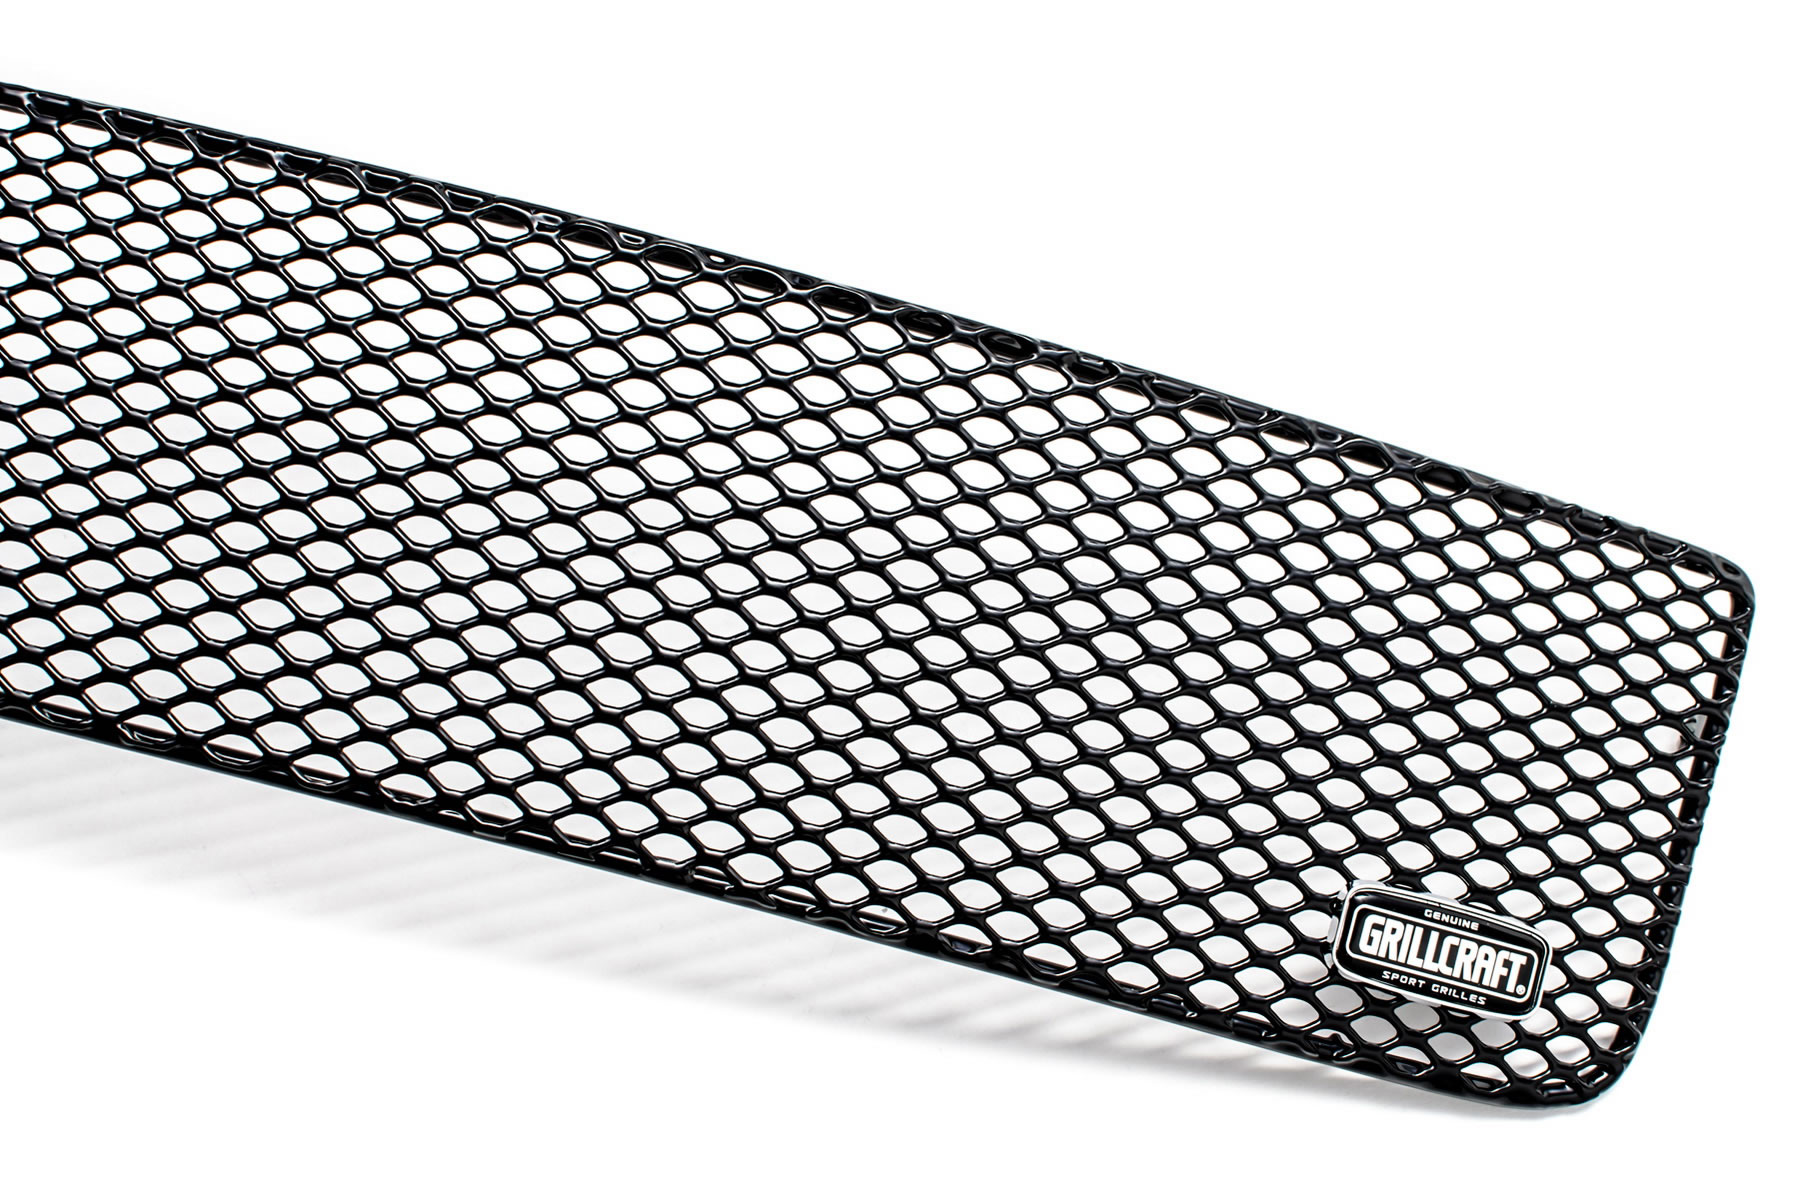 Grill Craft Sport Grilles Che B Mx Grille Upper